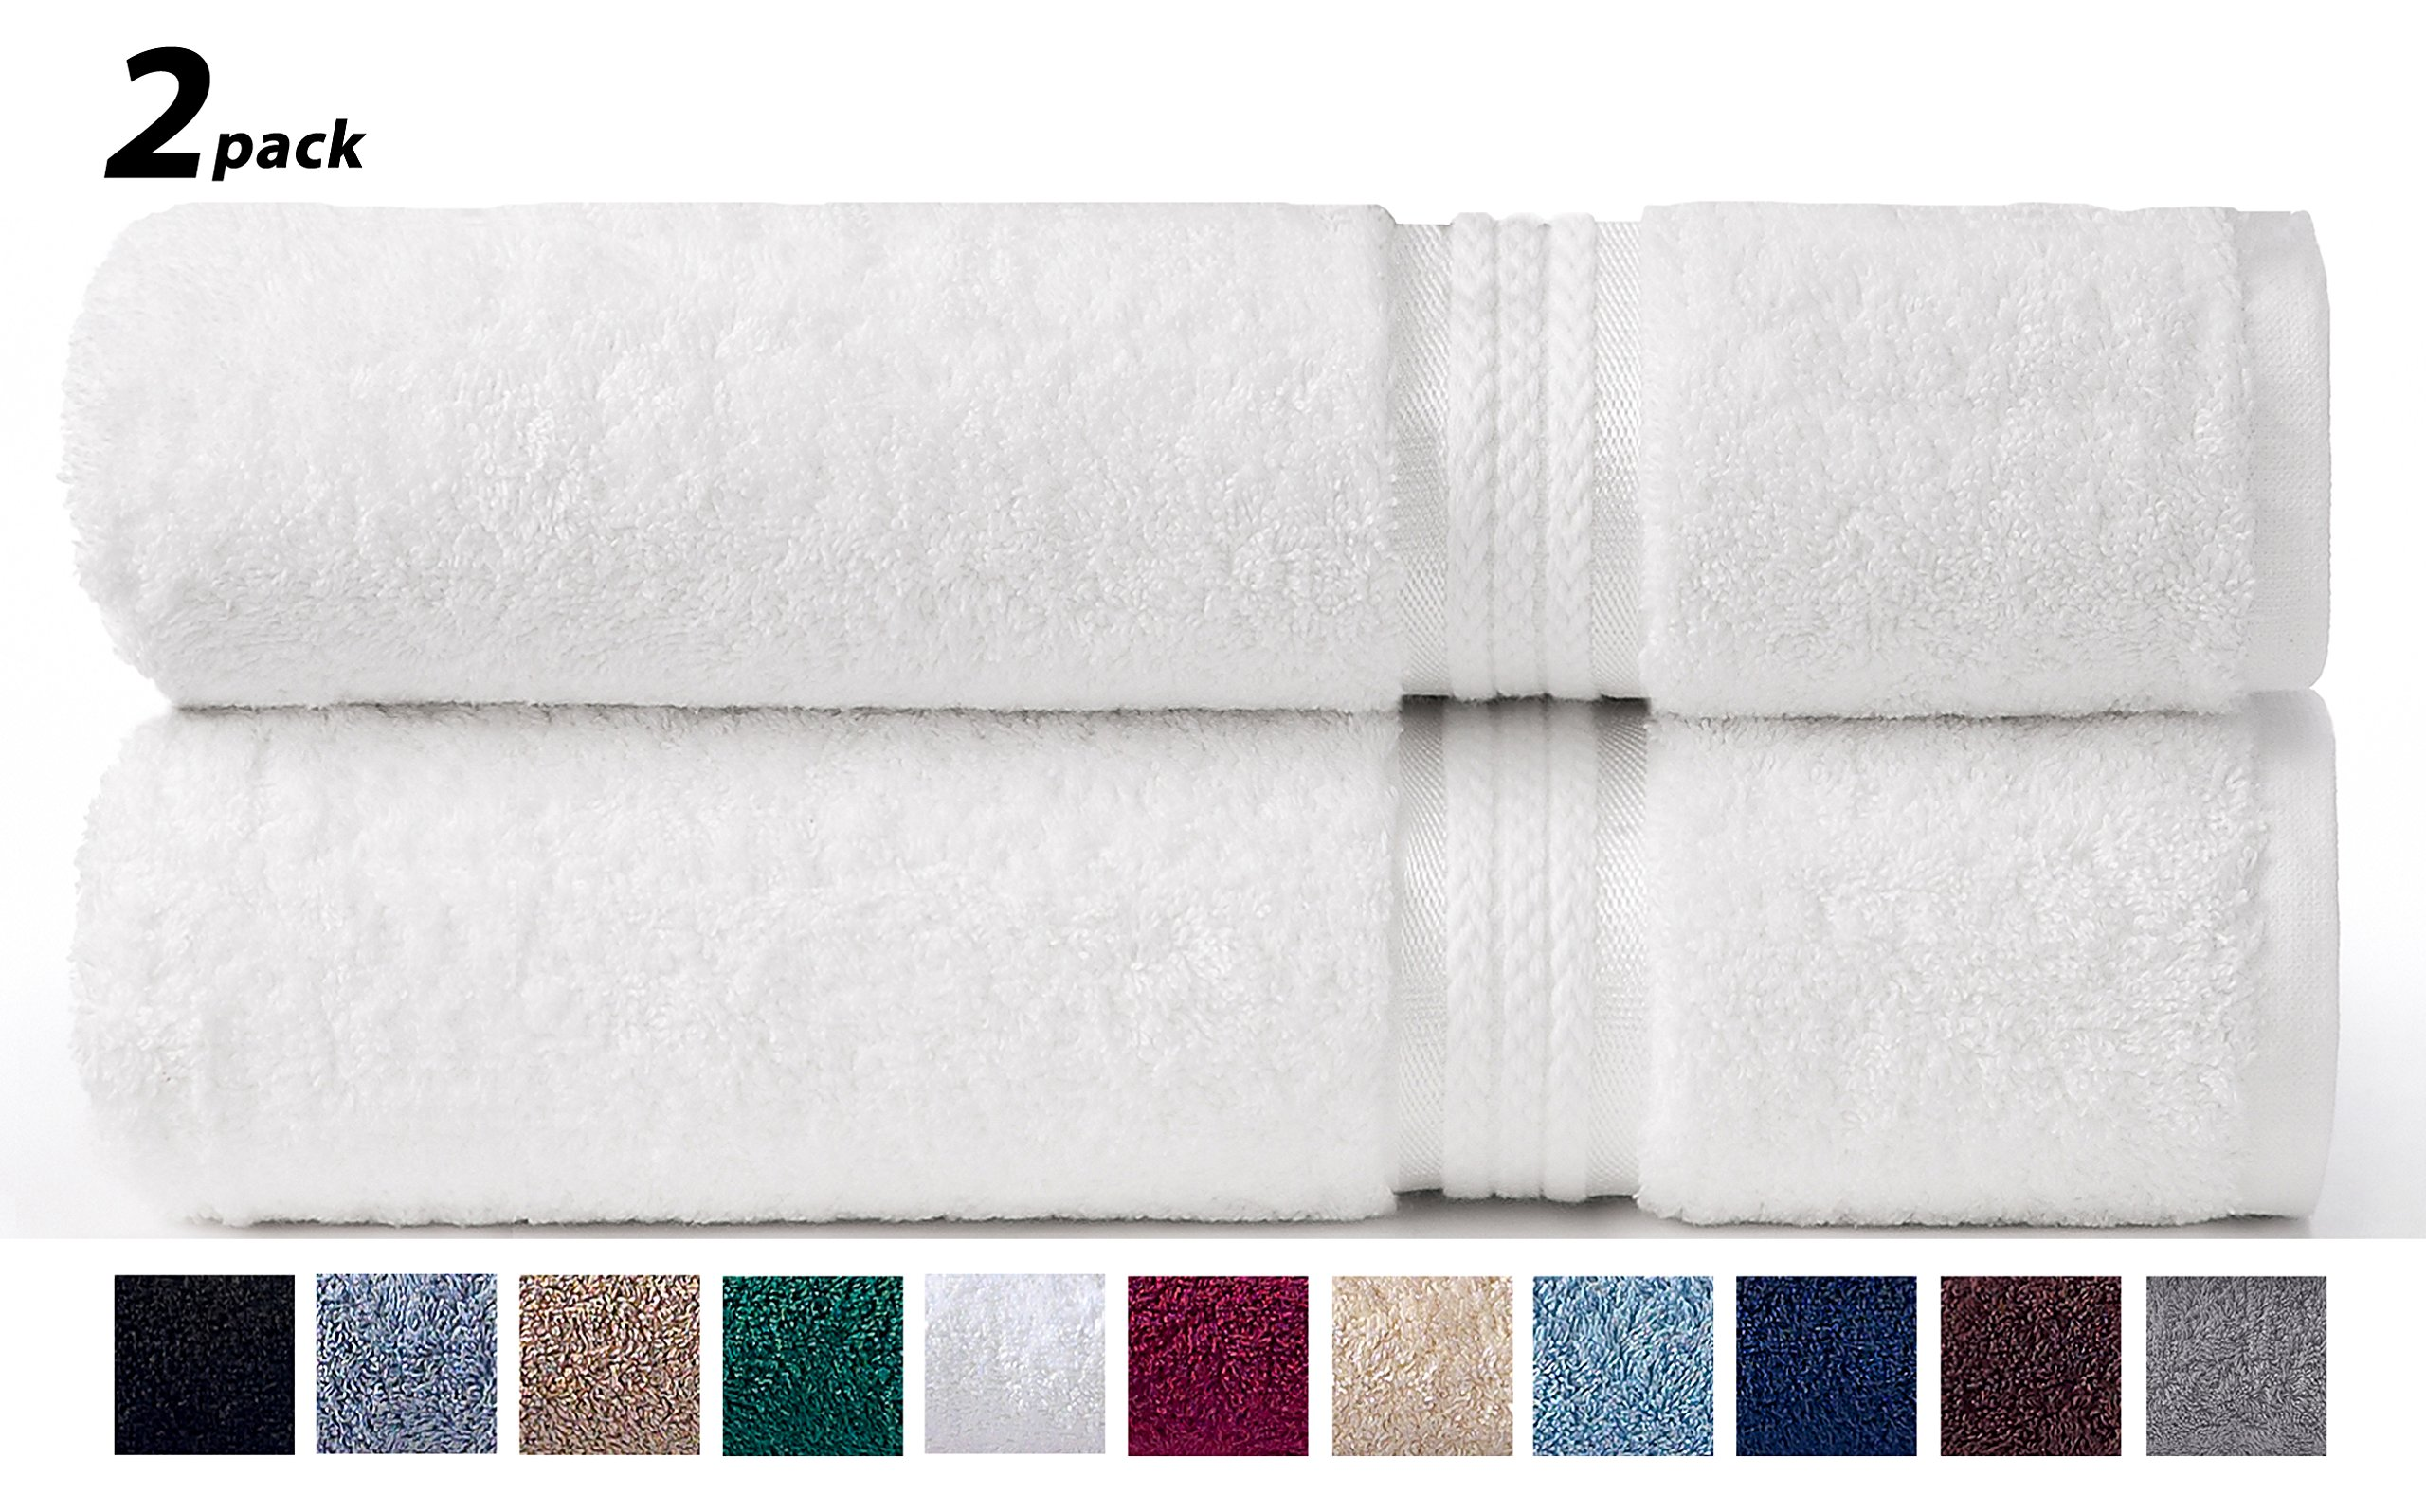 COTTON CRAFT - 2 Pack Ultra Soft Oversized Extra Large Bath Sheet 35x70 White - Weighs 33 Ounces - 100% Pure Ringspun Cotton - Luxurious Rayon Trim - Ideal for Everyday use - Easy Care Machine wash by COTTON CRAFT